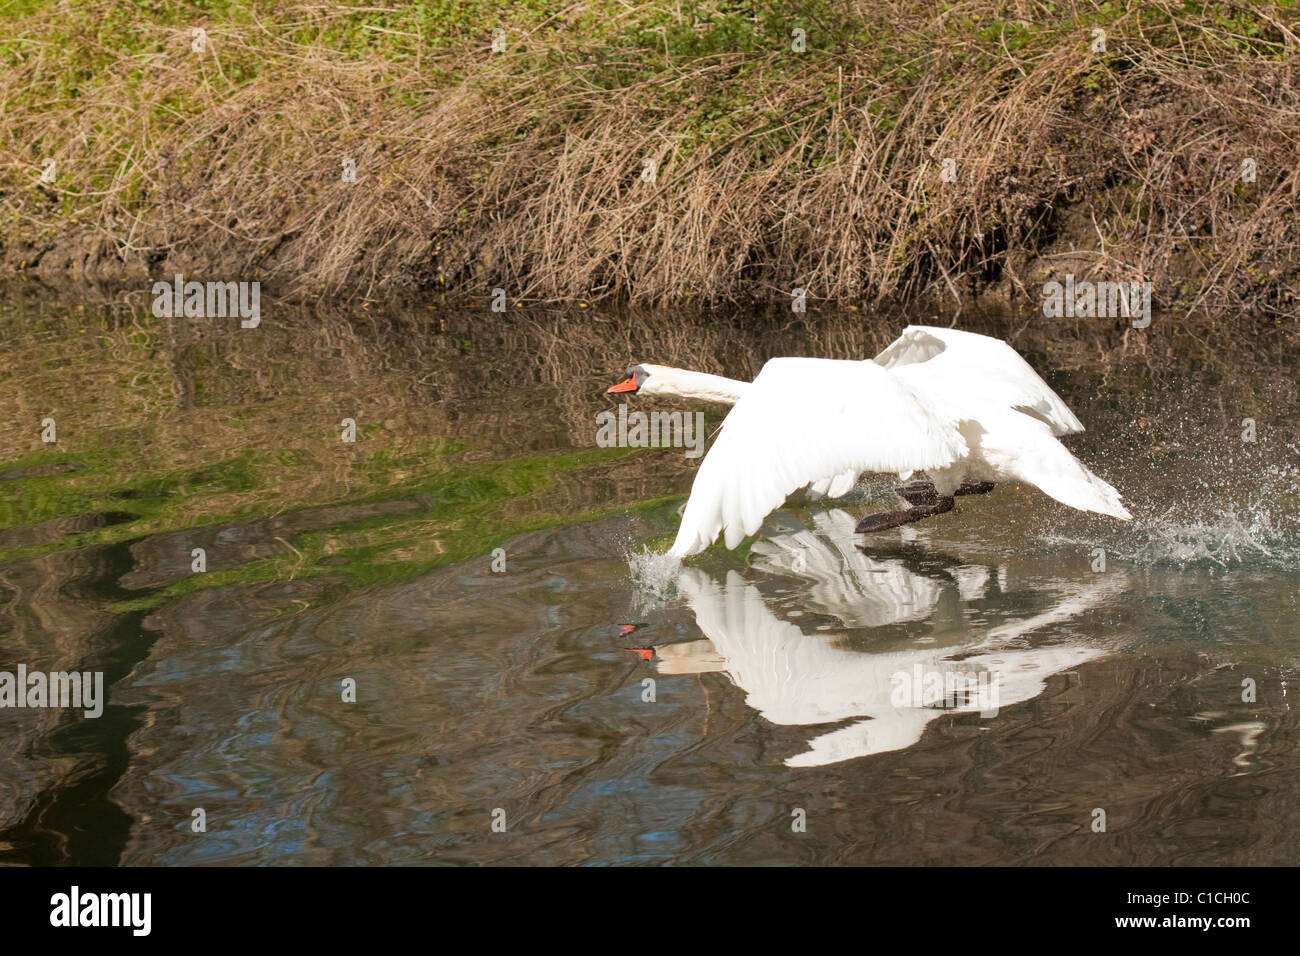 Goose landing on the river in nature - Stock Image